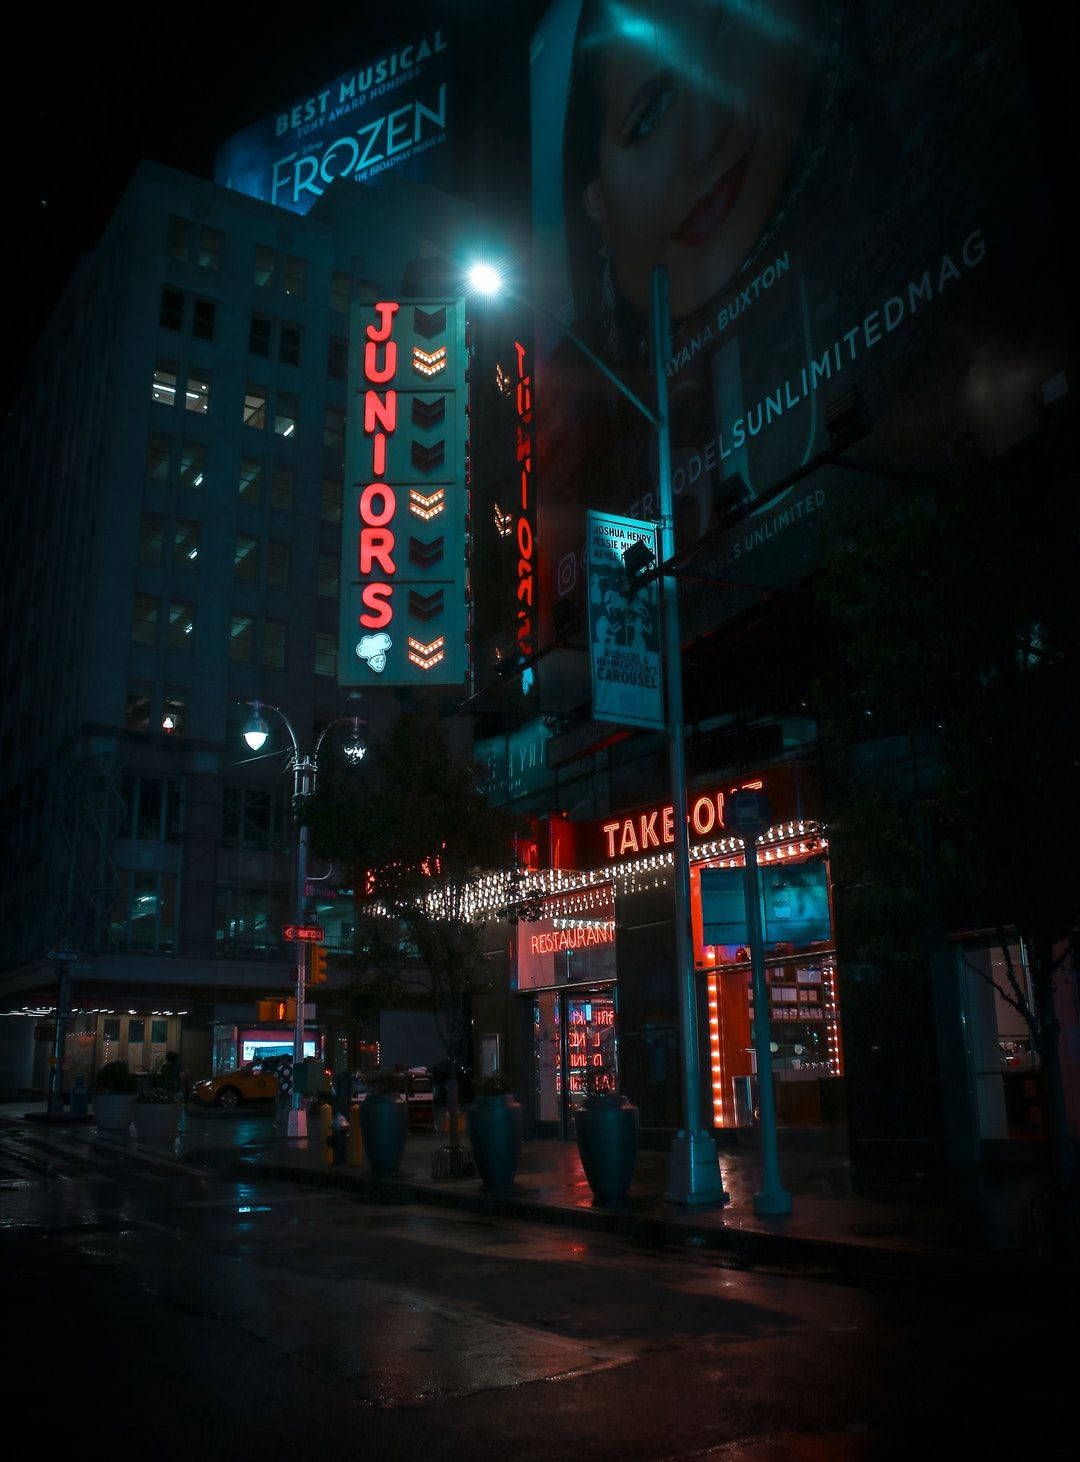 Pin By T13r On Street Picture Neon Wallpaper Man Wallpaper Photography Wallpaper